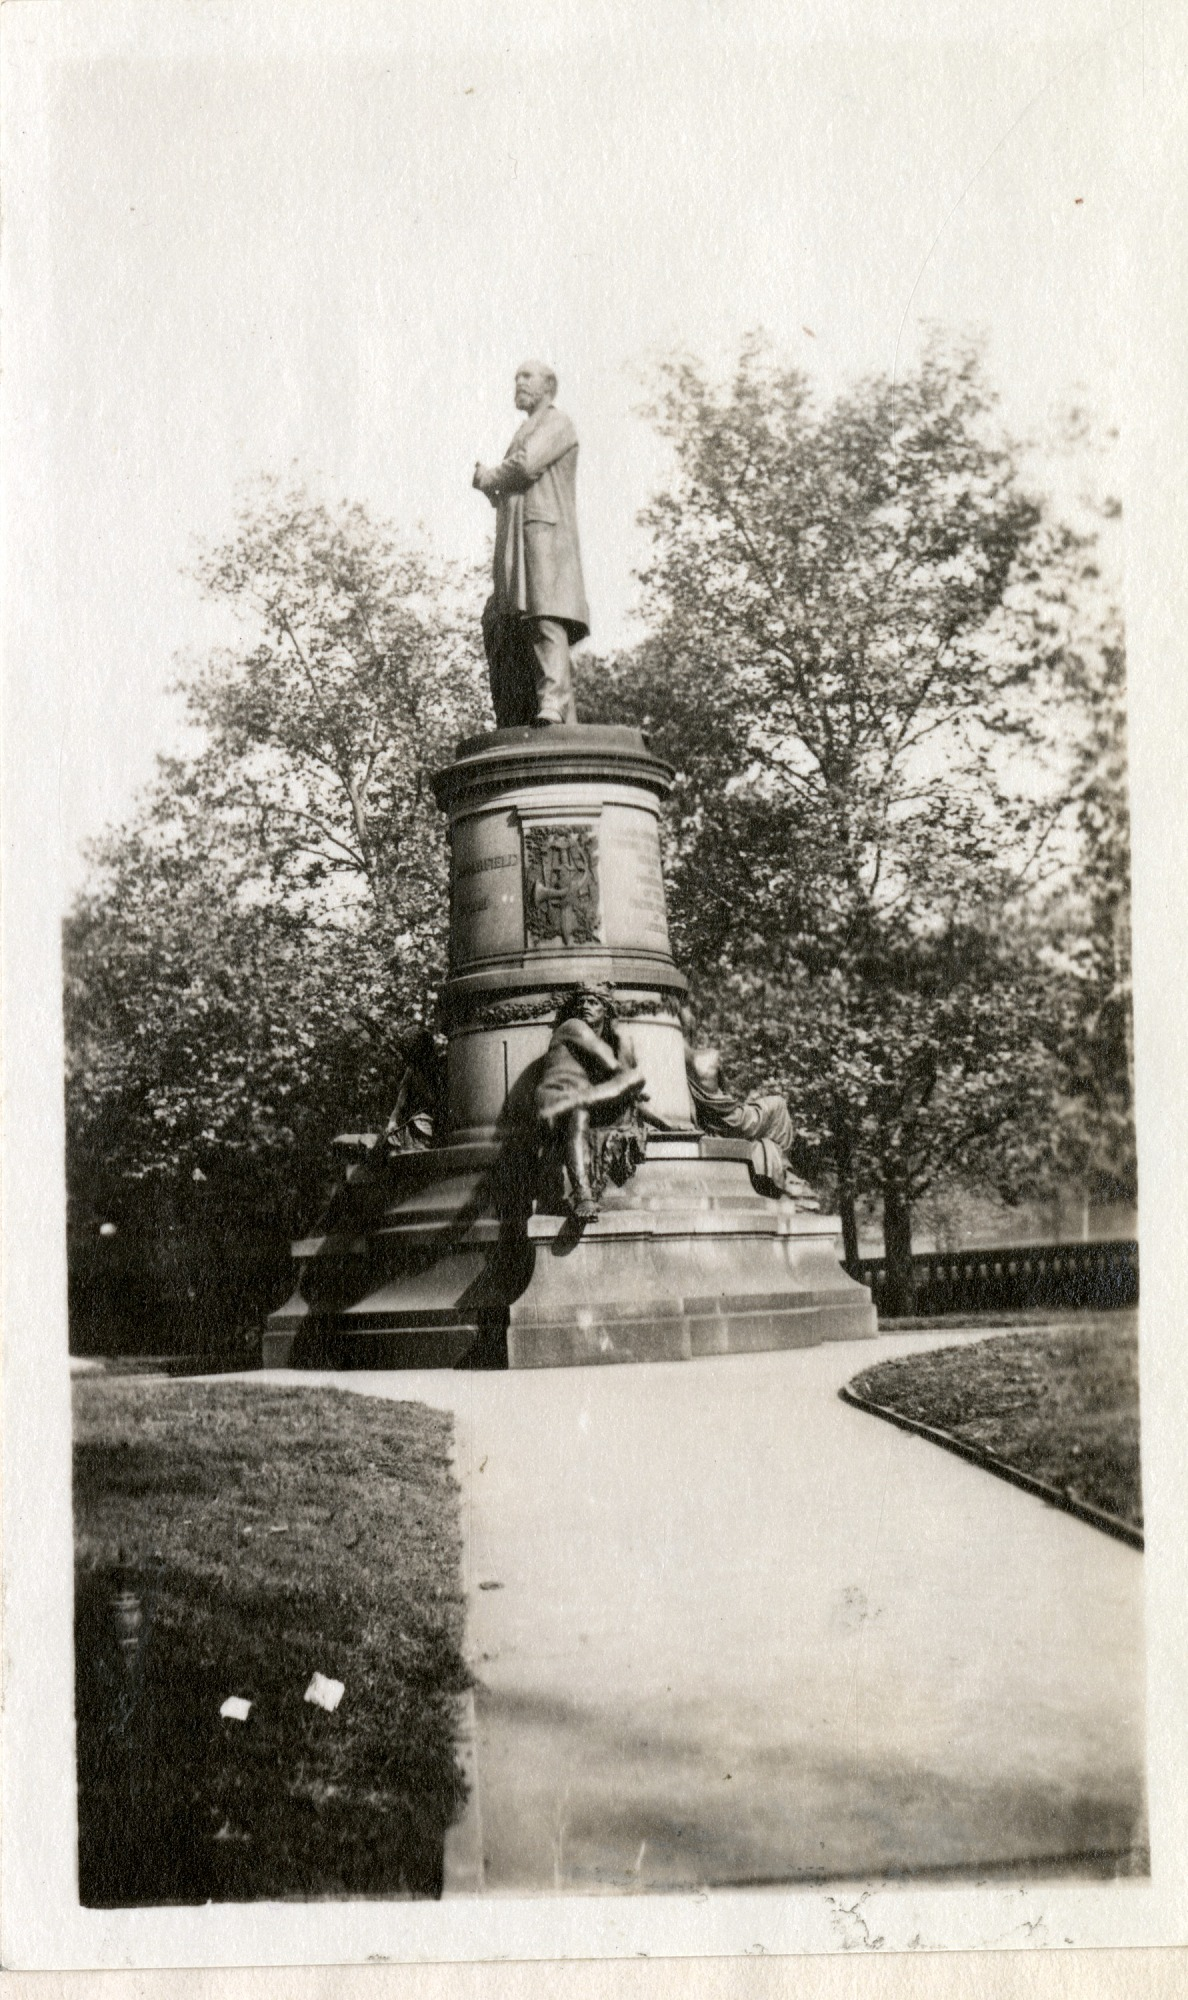 James A. Garfield Monument, 1919, Smithsonian Institution Archives, SIA RU007355 [SIA2010-2016].